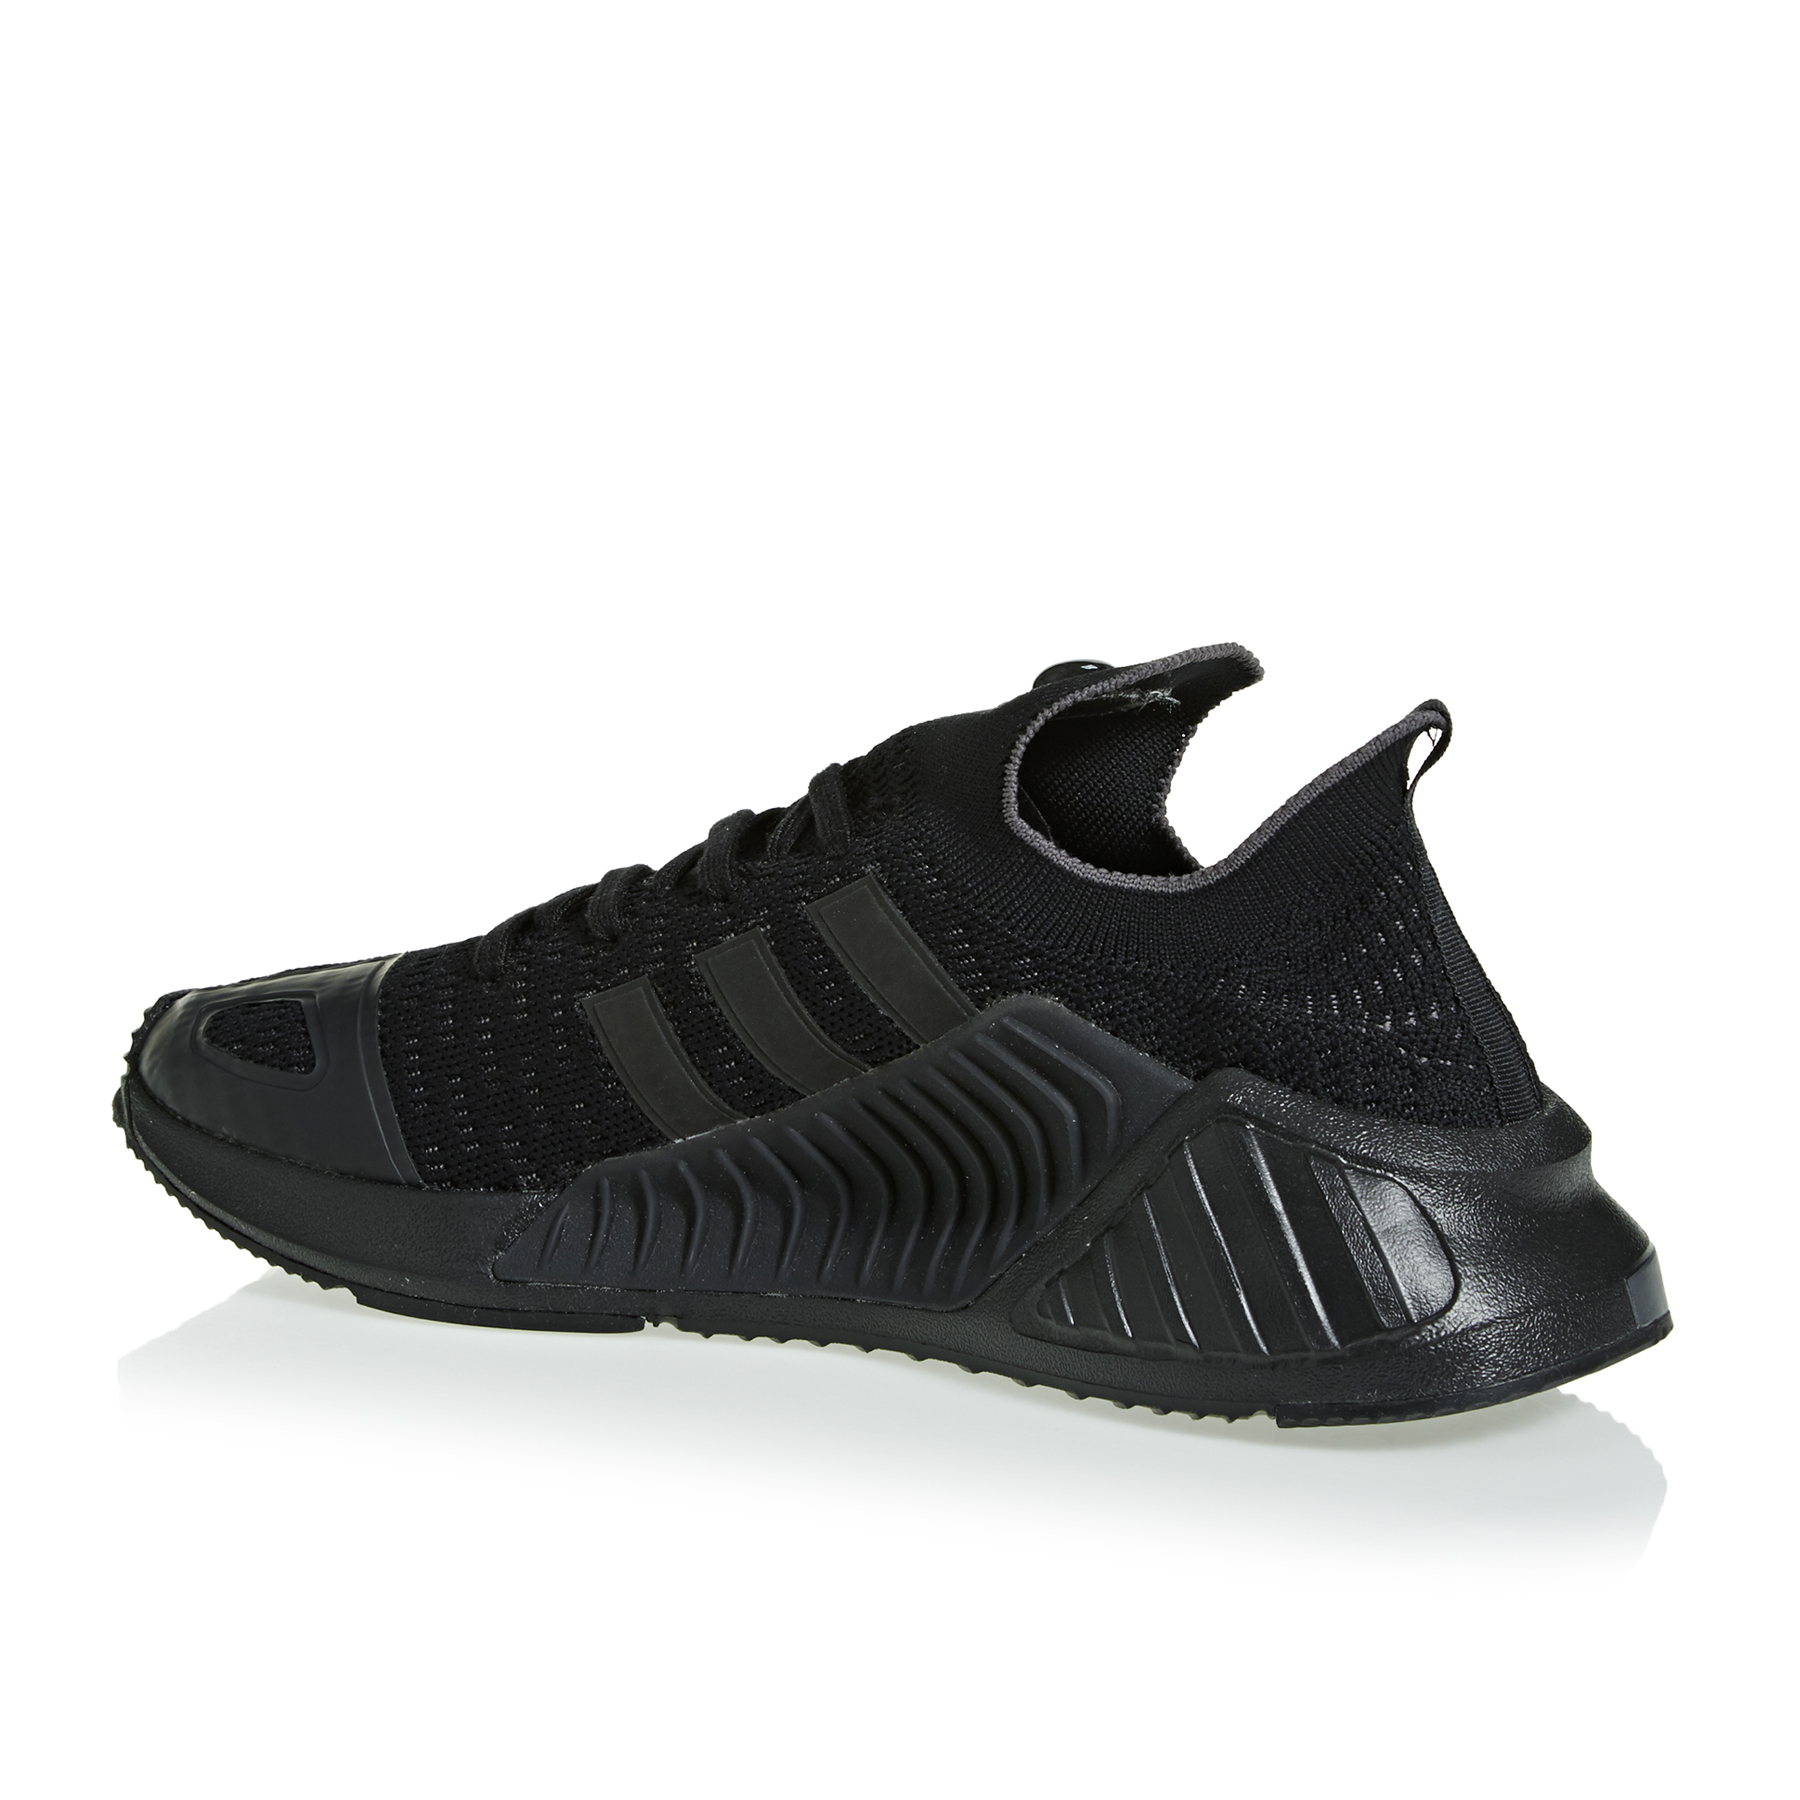 Adidas Originals Climacool 0217 Pk Shoes | Free Delivery* on